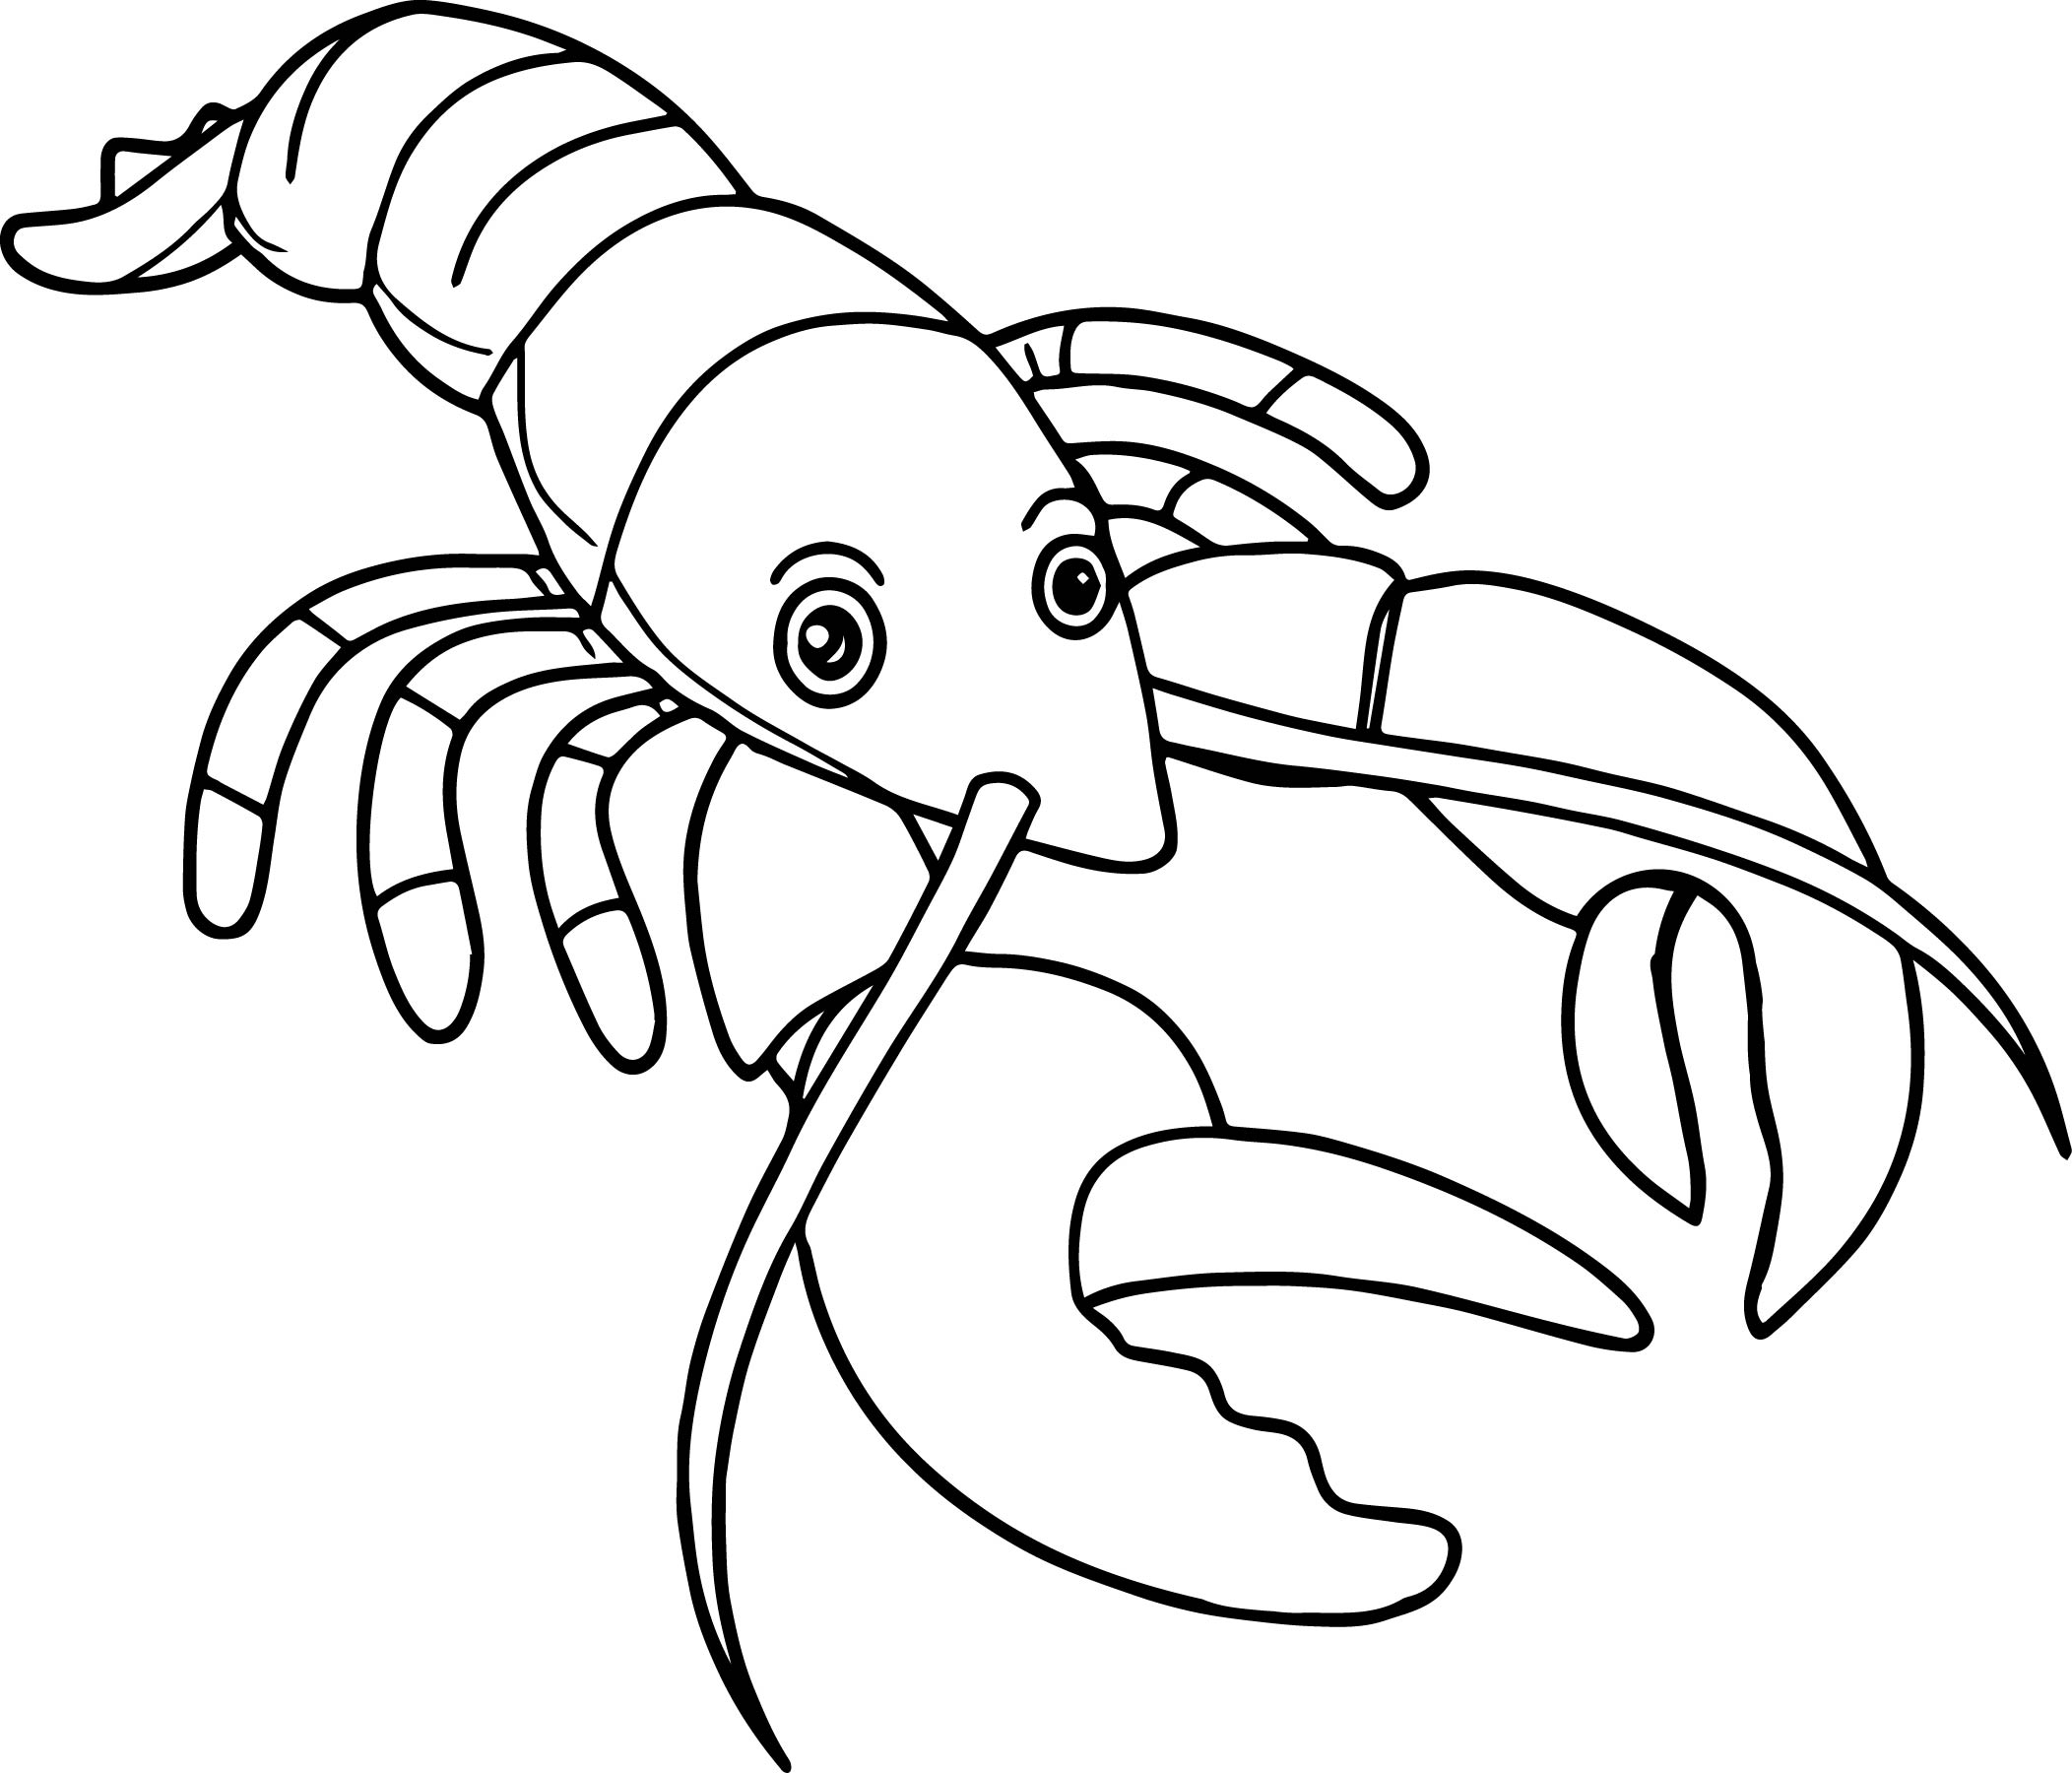 Lobster Silhouette Clip Art At Getdrawings Com